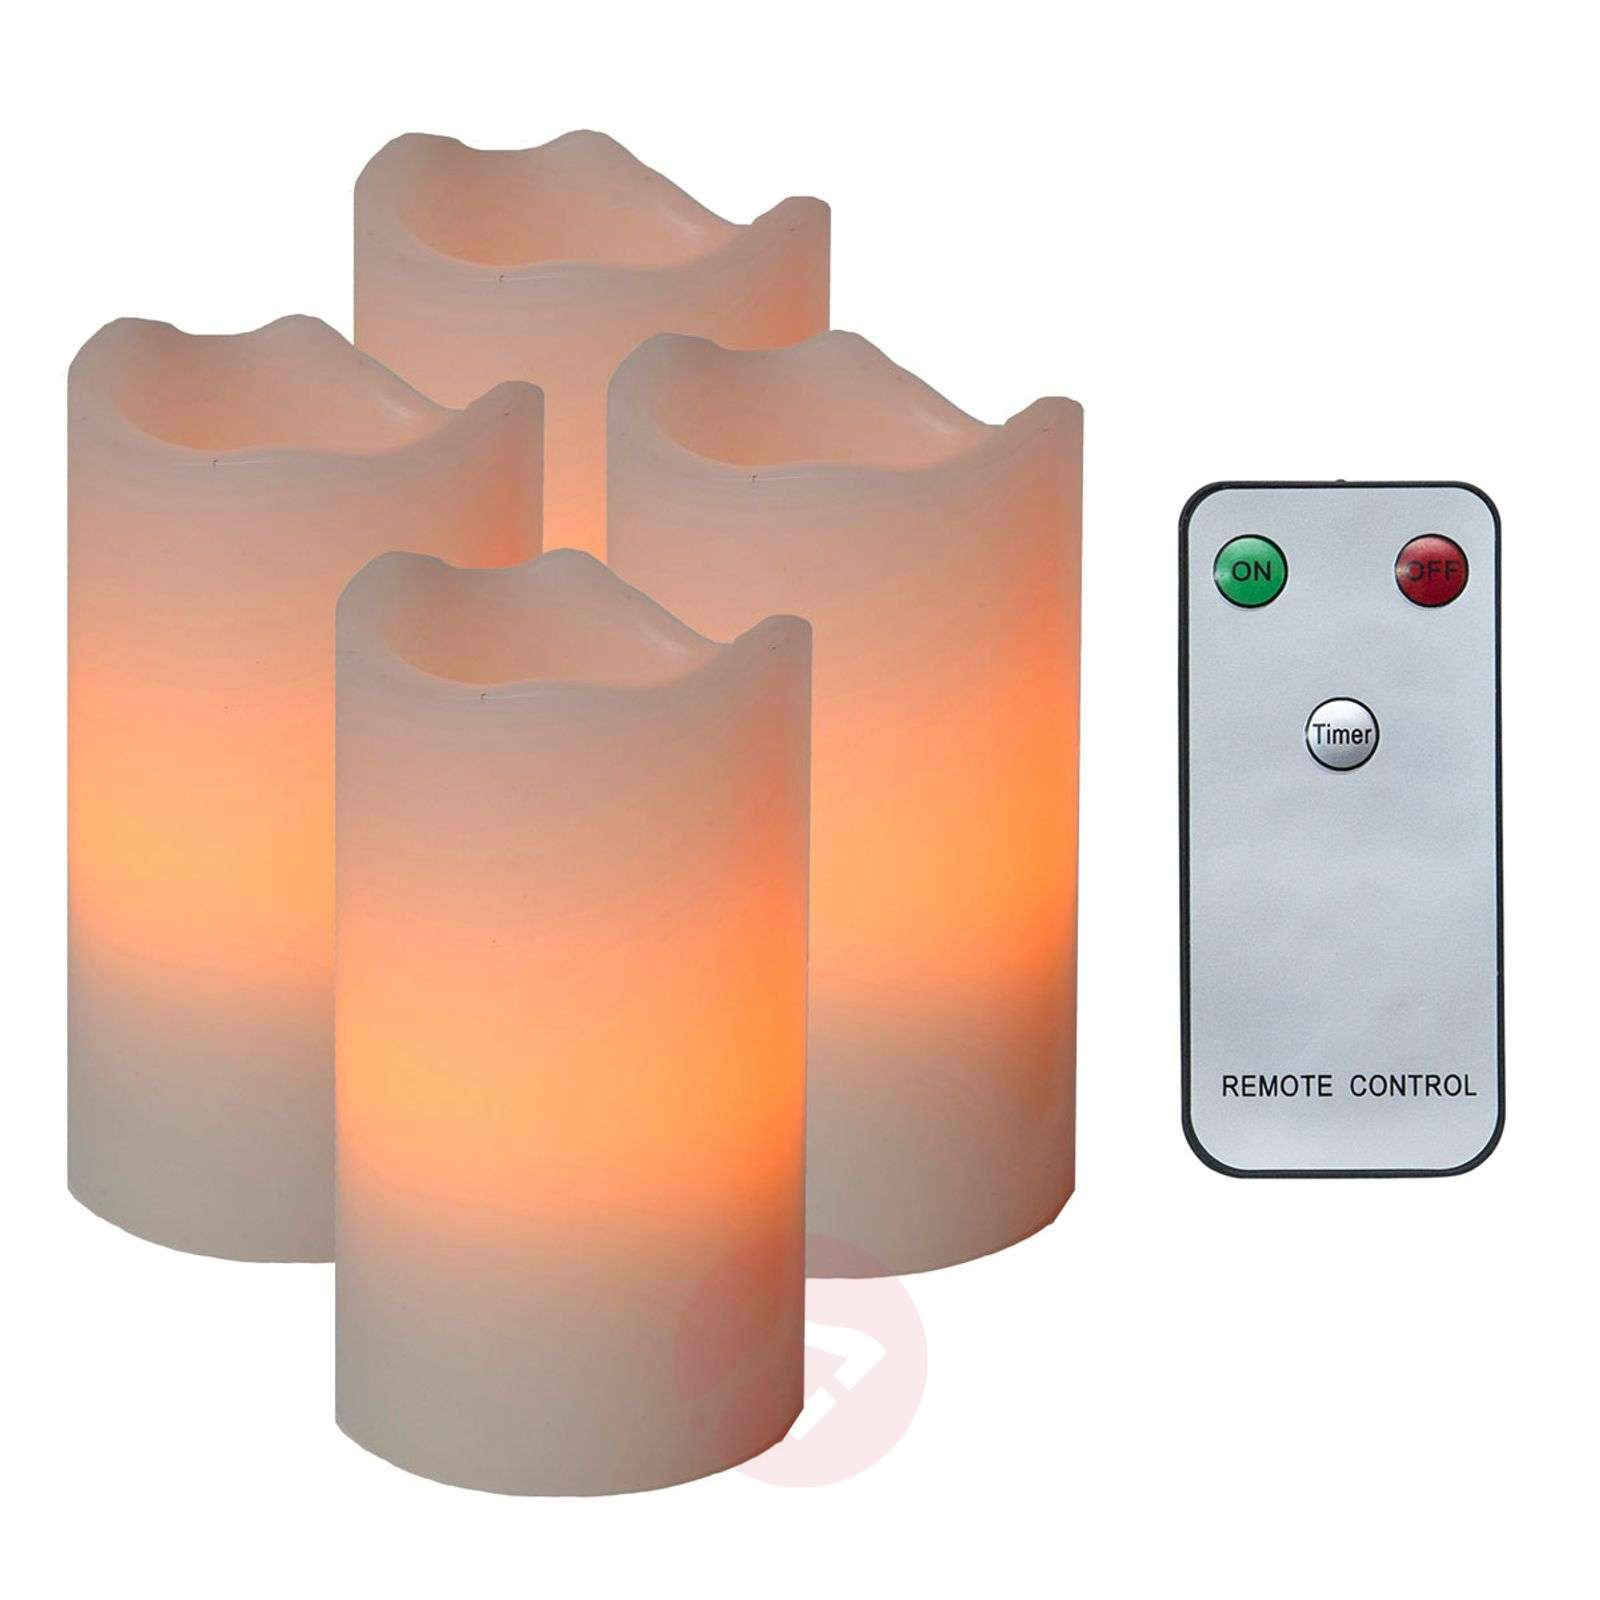 Set of 4 LED candles Candle with remote control-1522511X-01